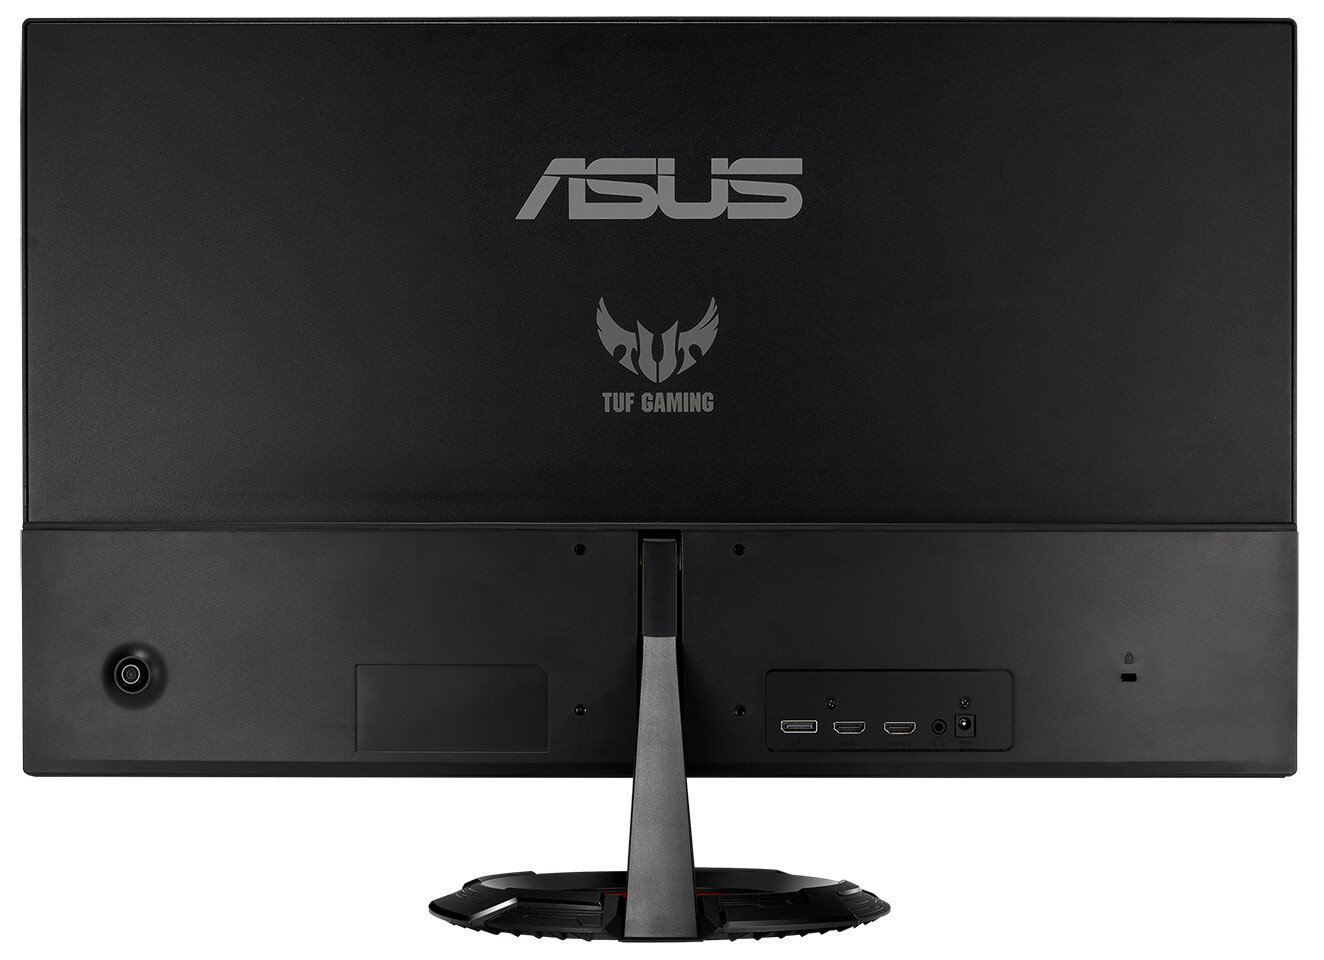 Asus Intros Tuf Gaming Vg279q1r 27 Inch Monitor Techpowerup